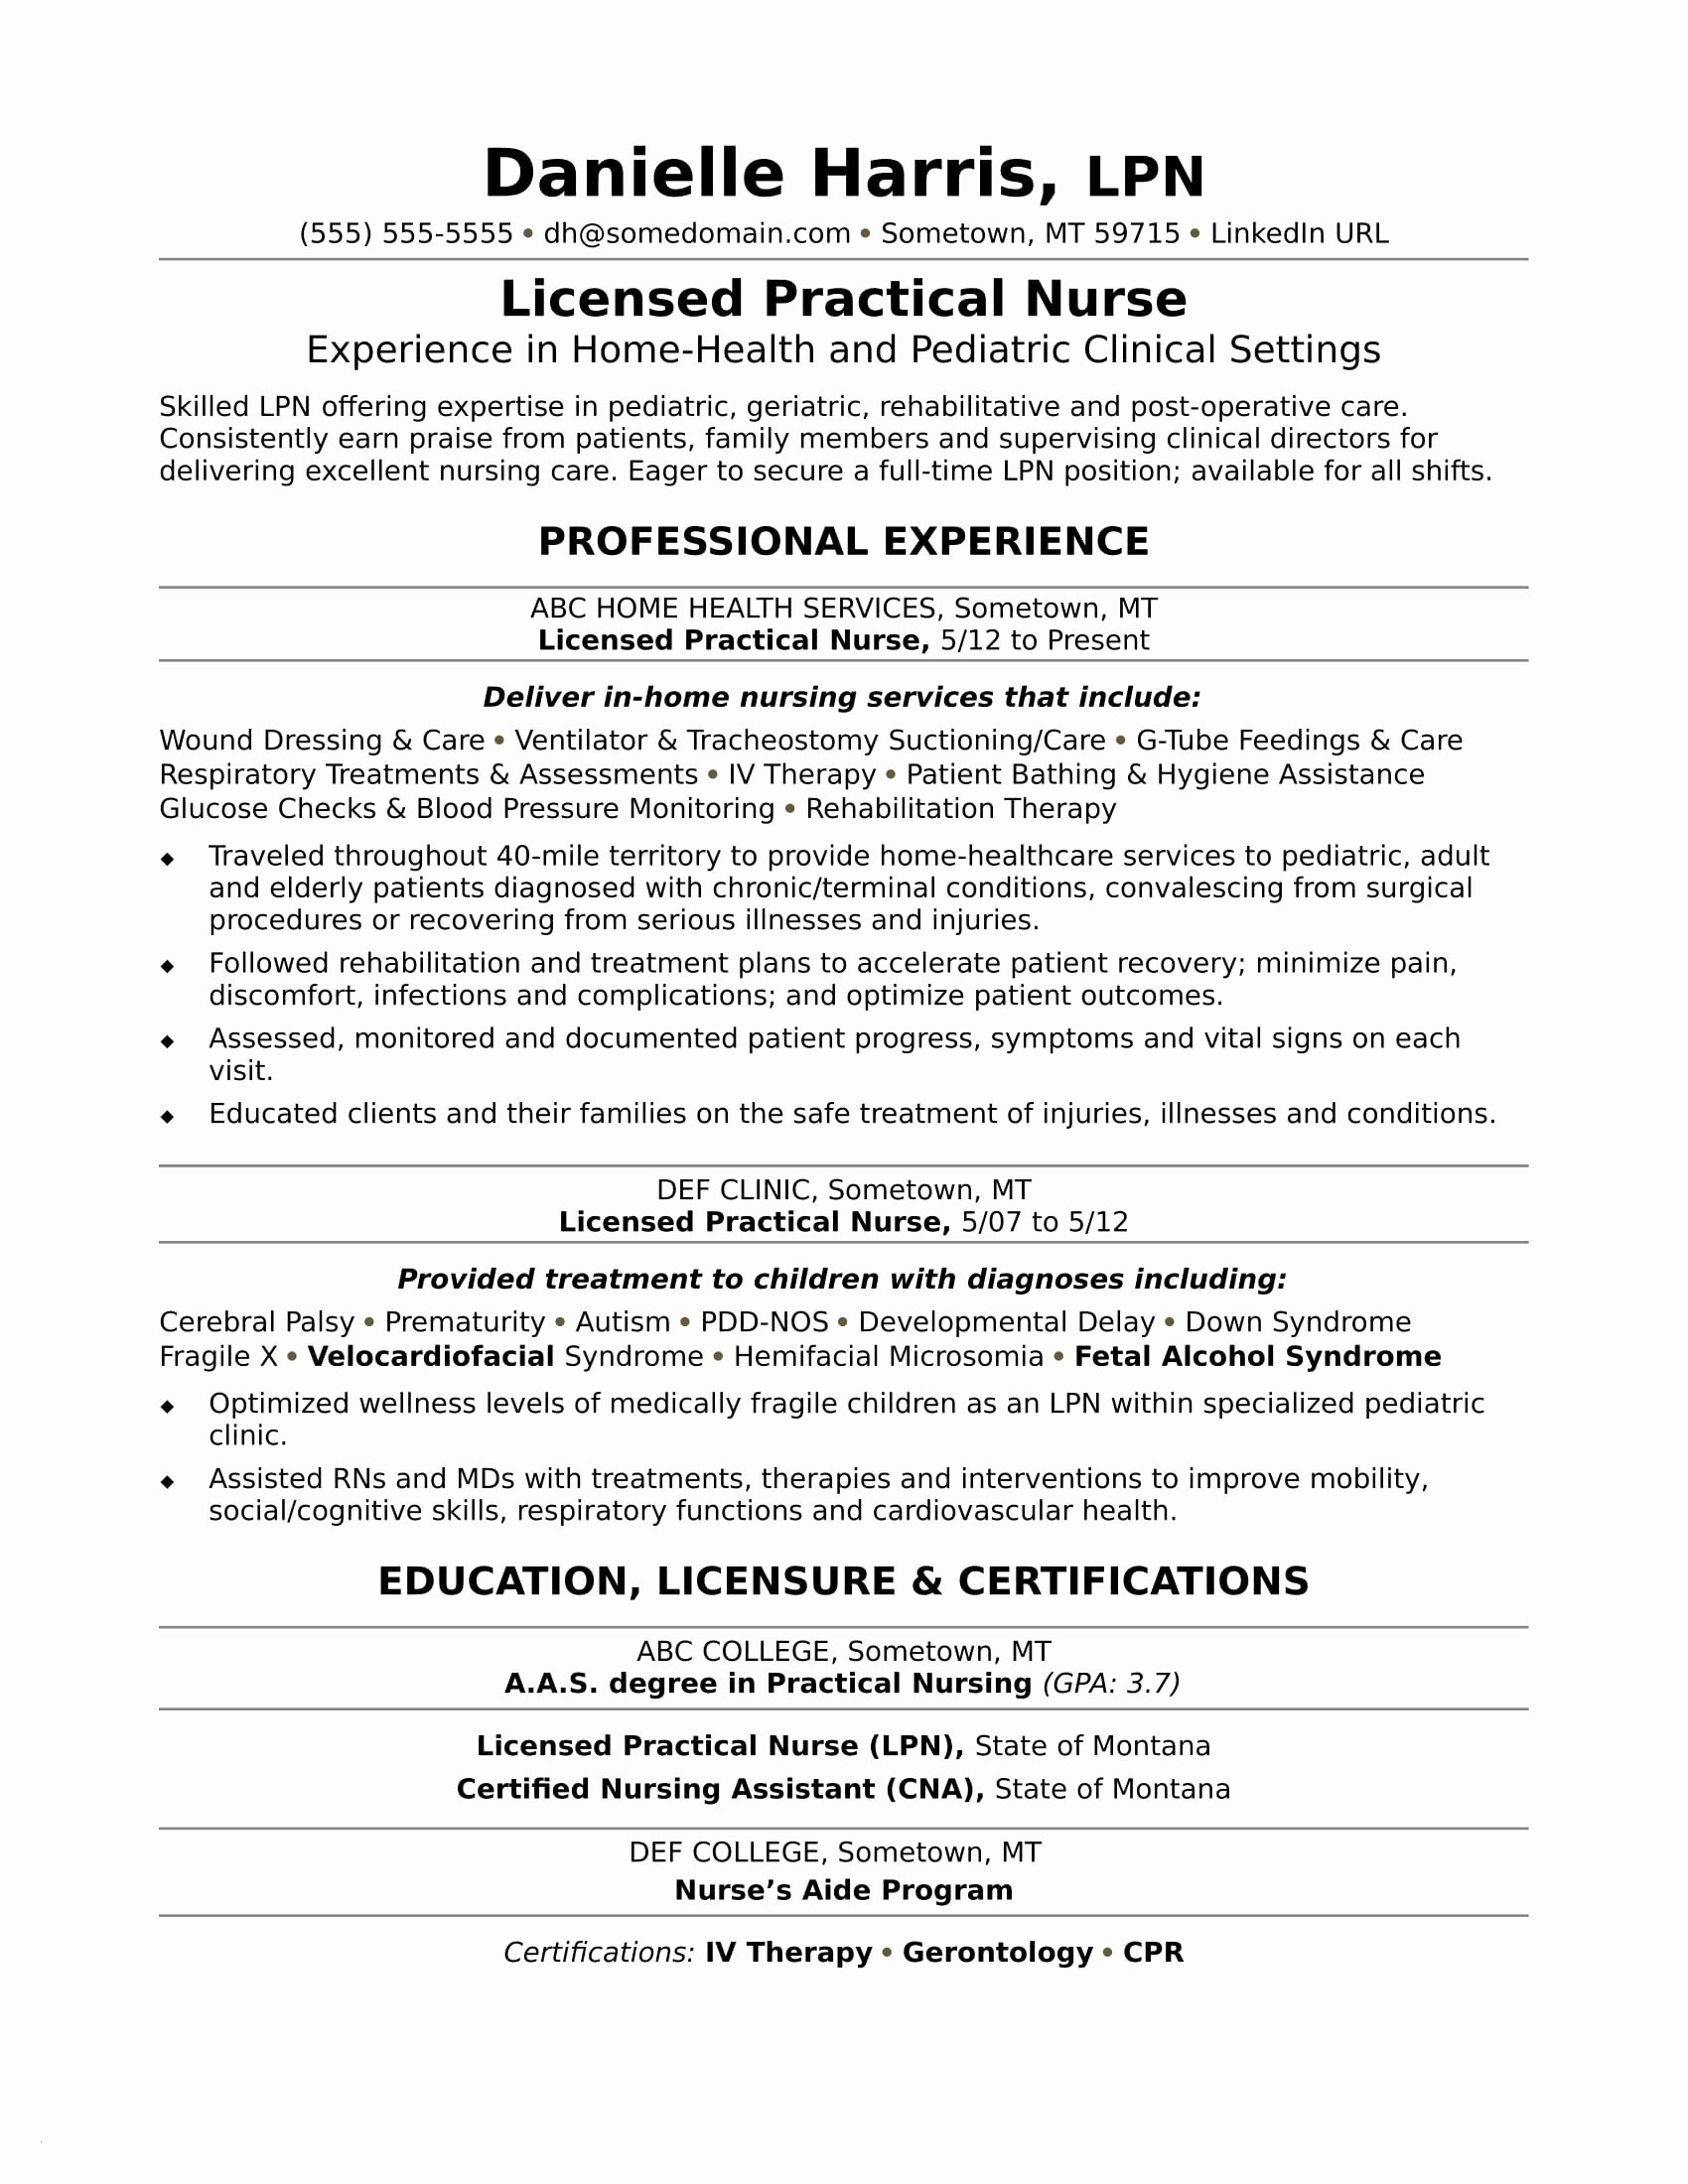 Salesperson Resume Template - Salesperson Resume Examples Paragraphrewriter